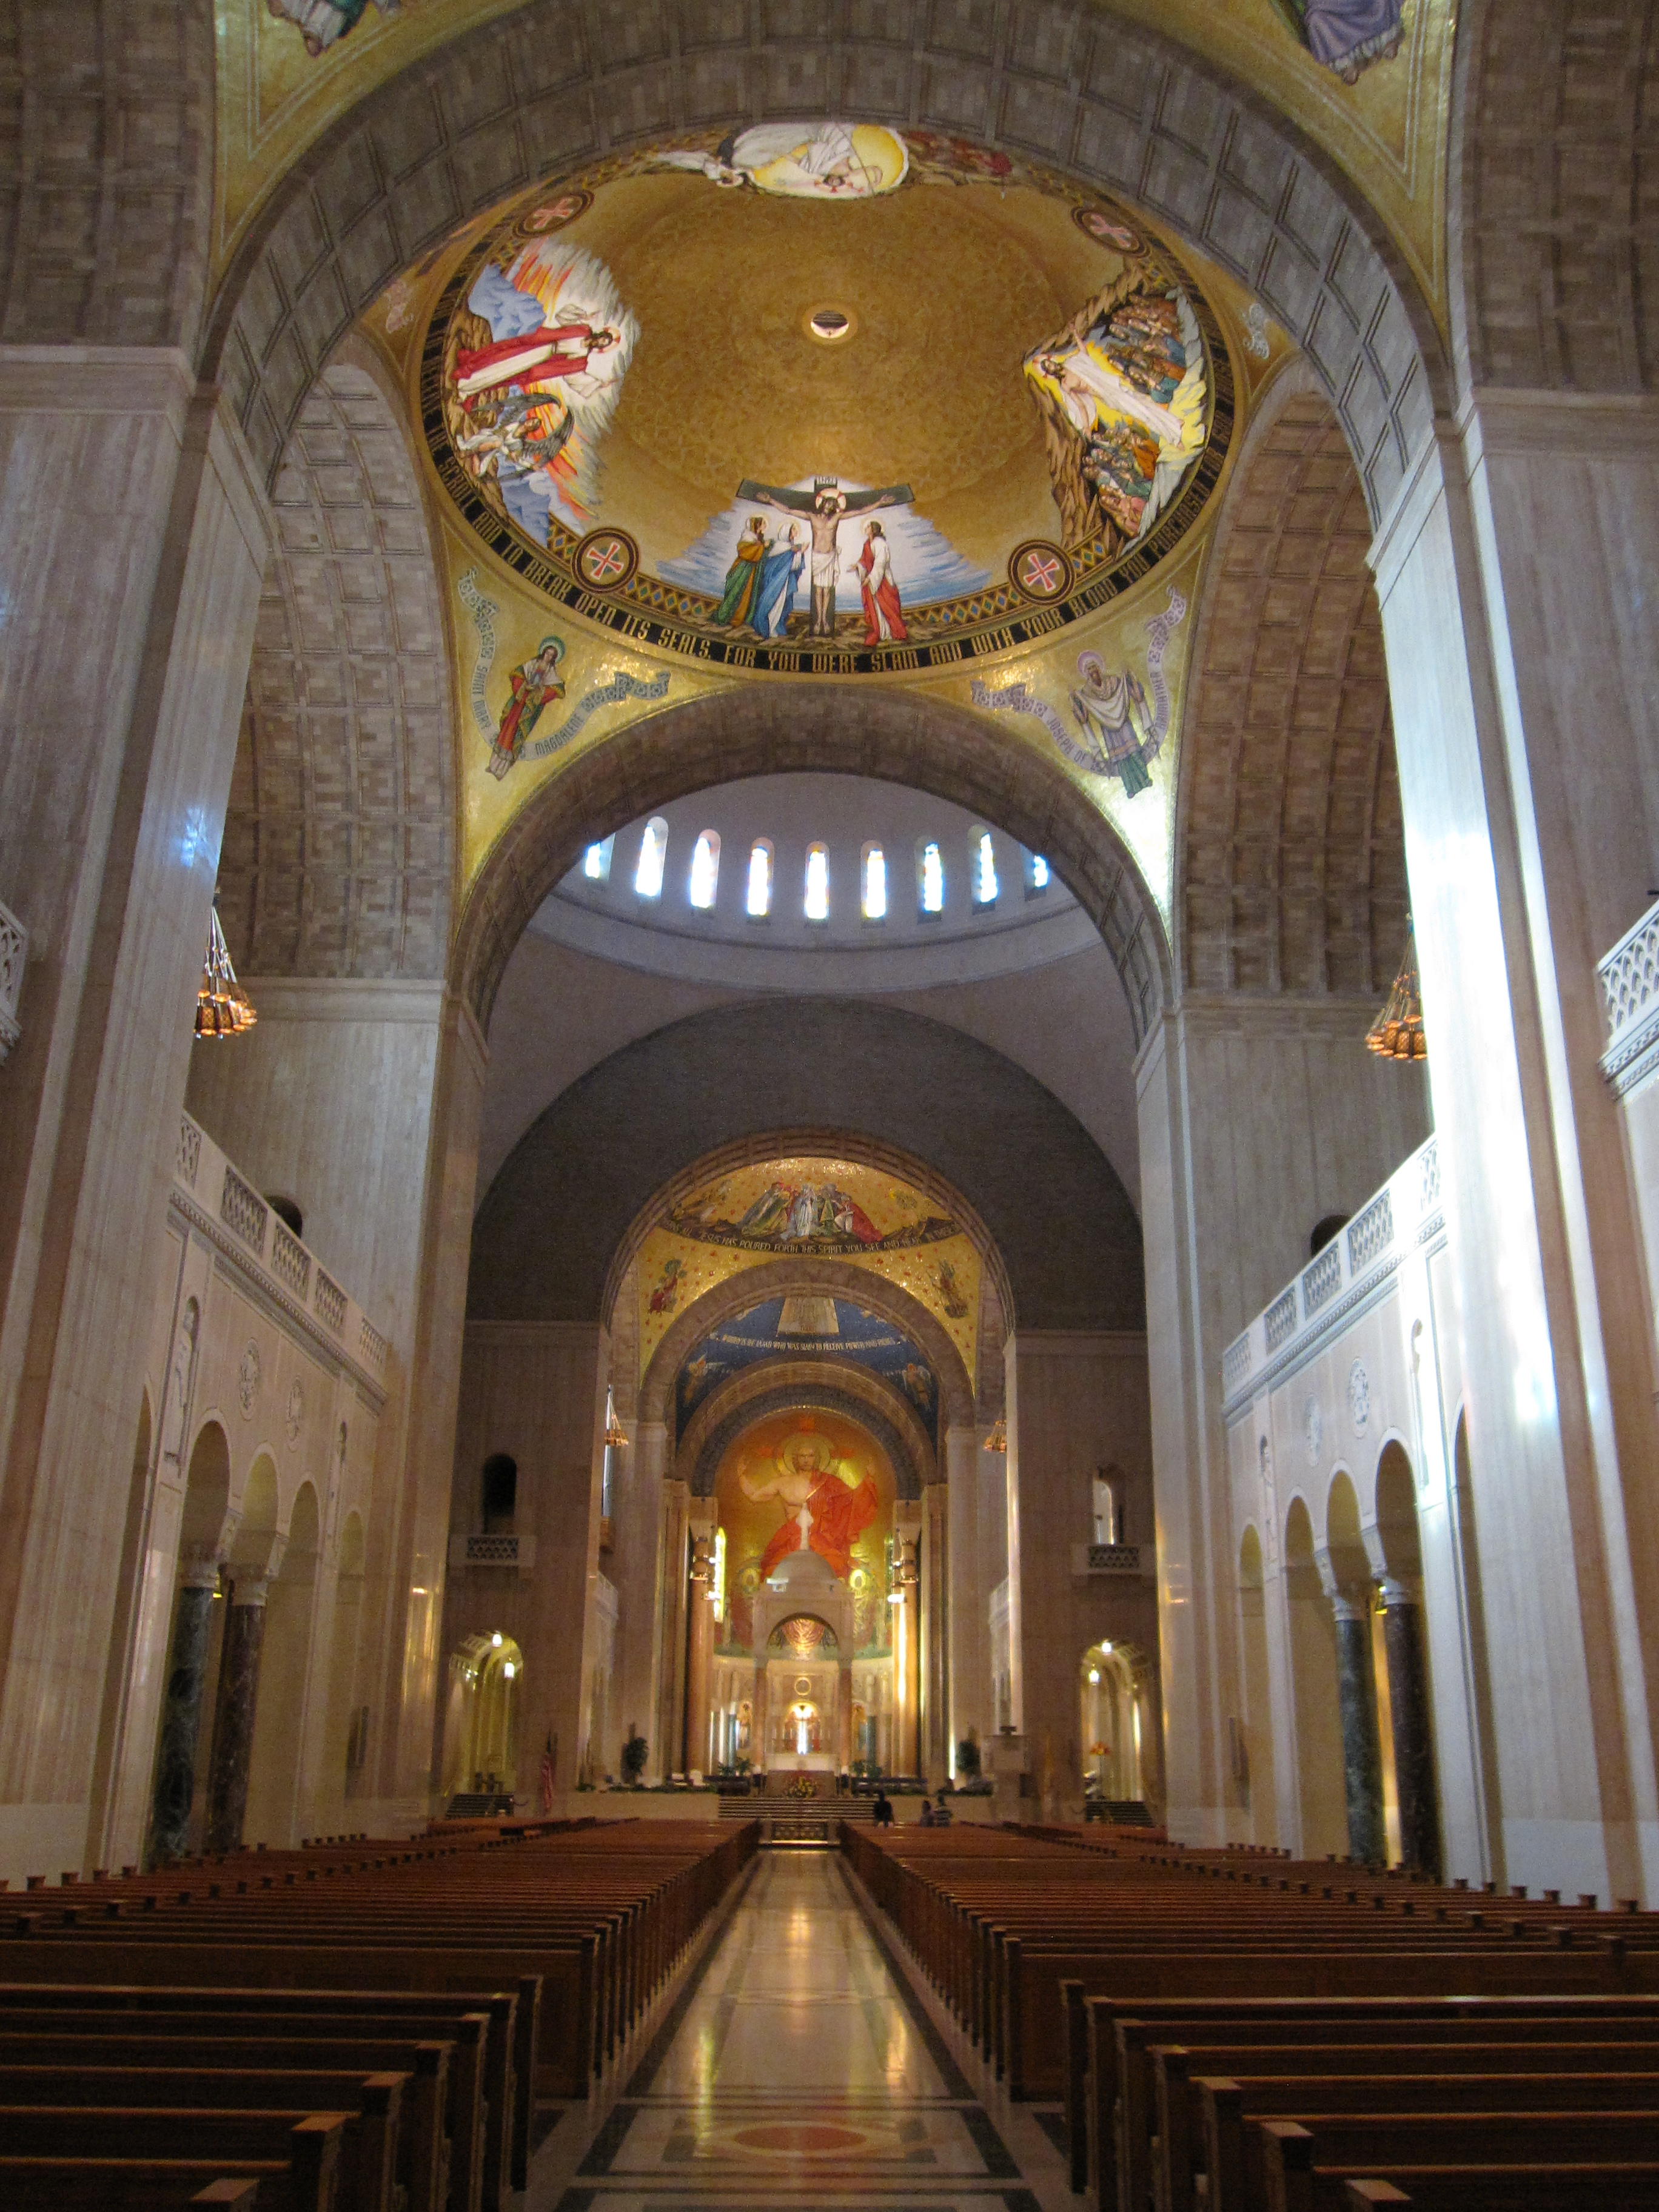 Interior view of the Basilica of the National Shrine of the Immaculate Conception. Image by Gryffindor - Own work, CC BY-SA 3.0, https://commons.wikimedia.org/w/index.php?curid=10621405